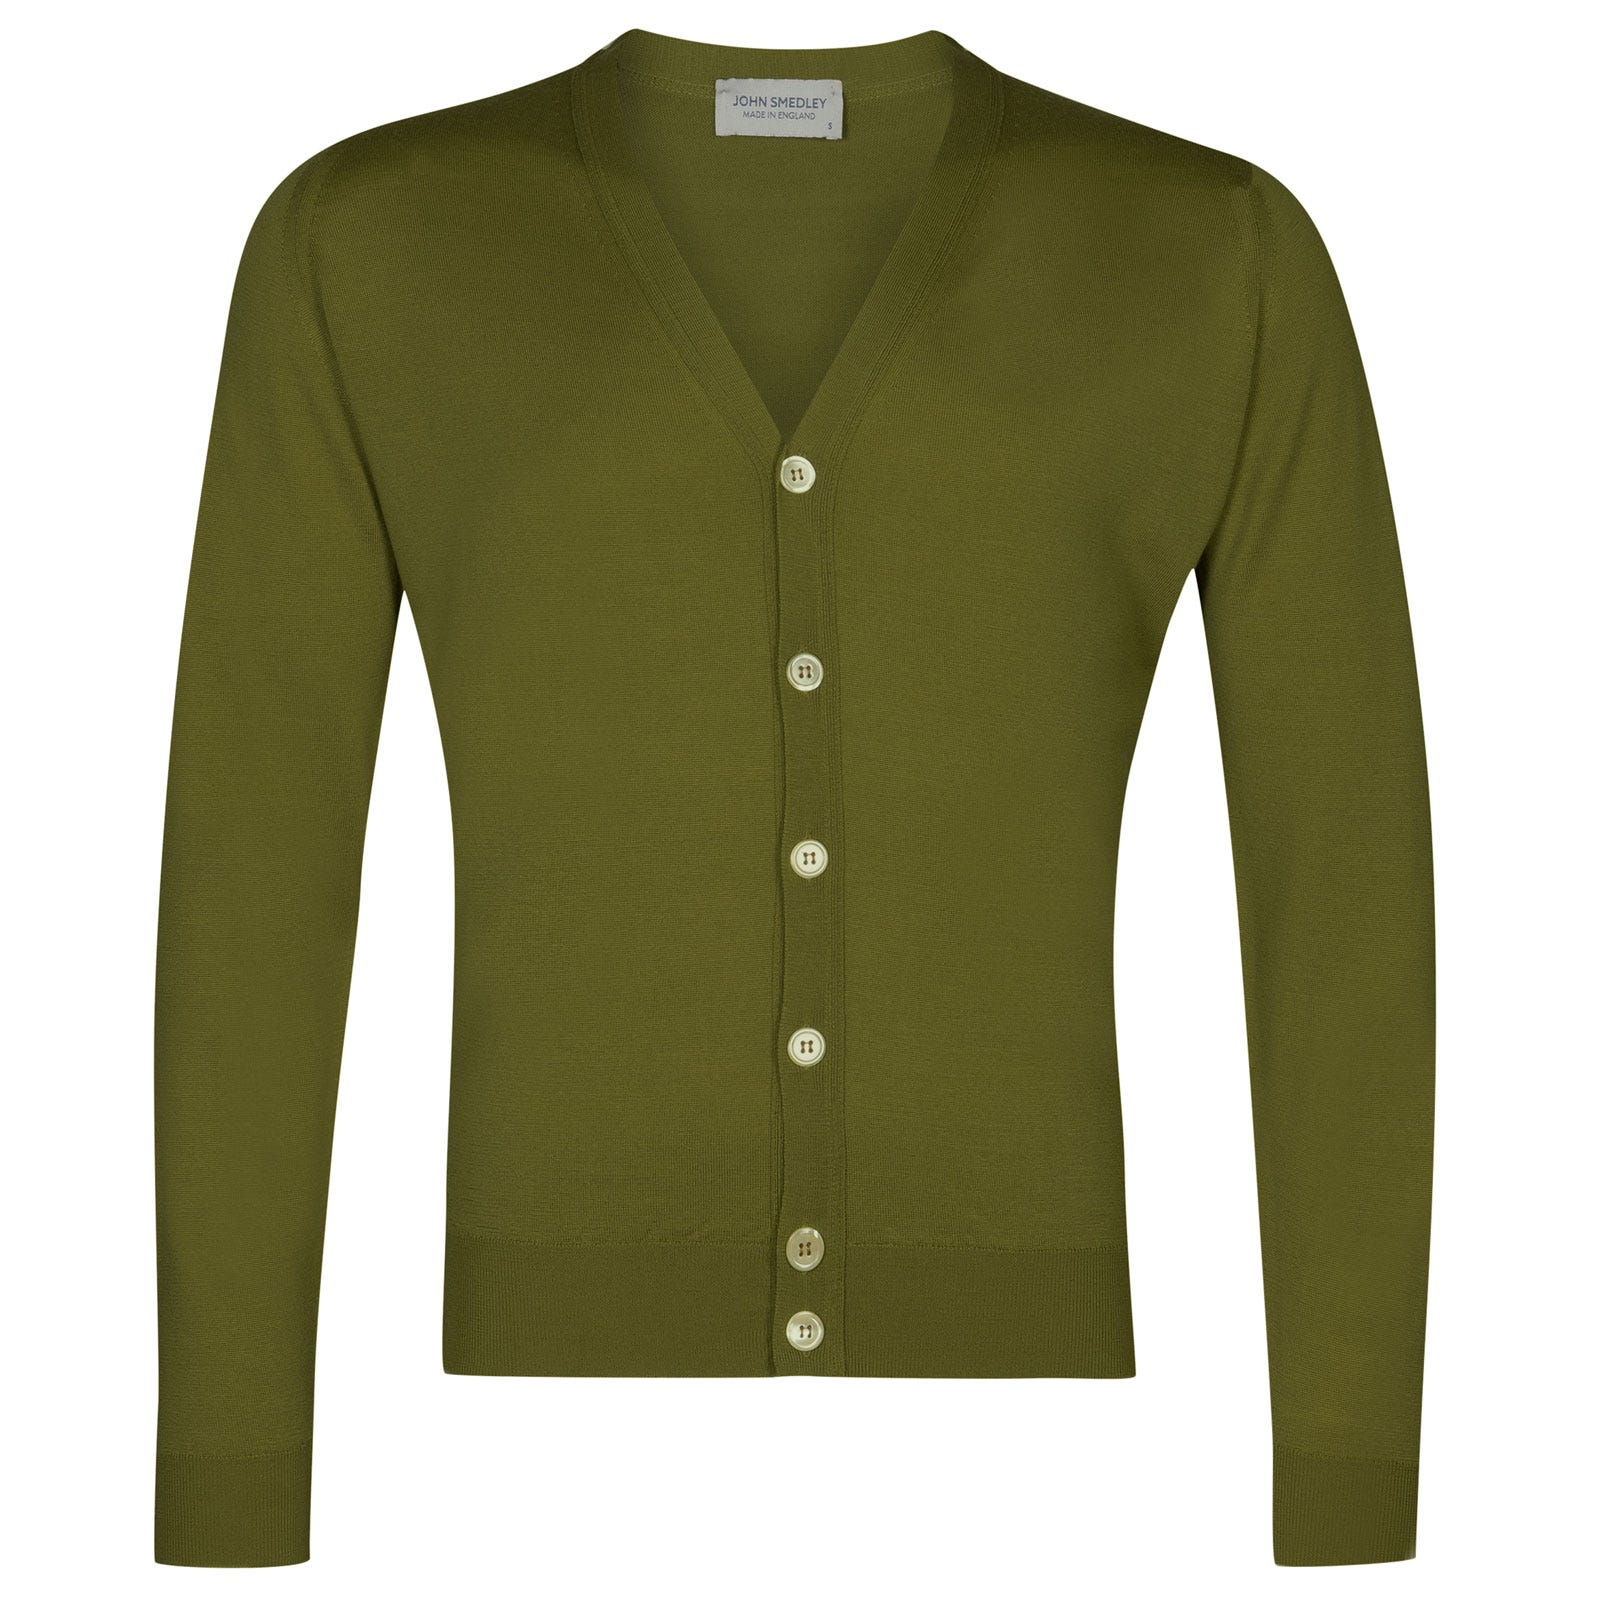 John Smedley naples Merino Wool Cardigan in Lumsdale Green-M